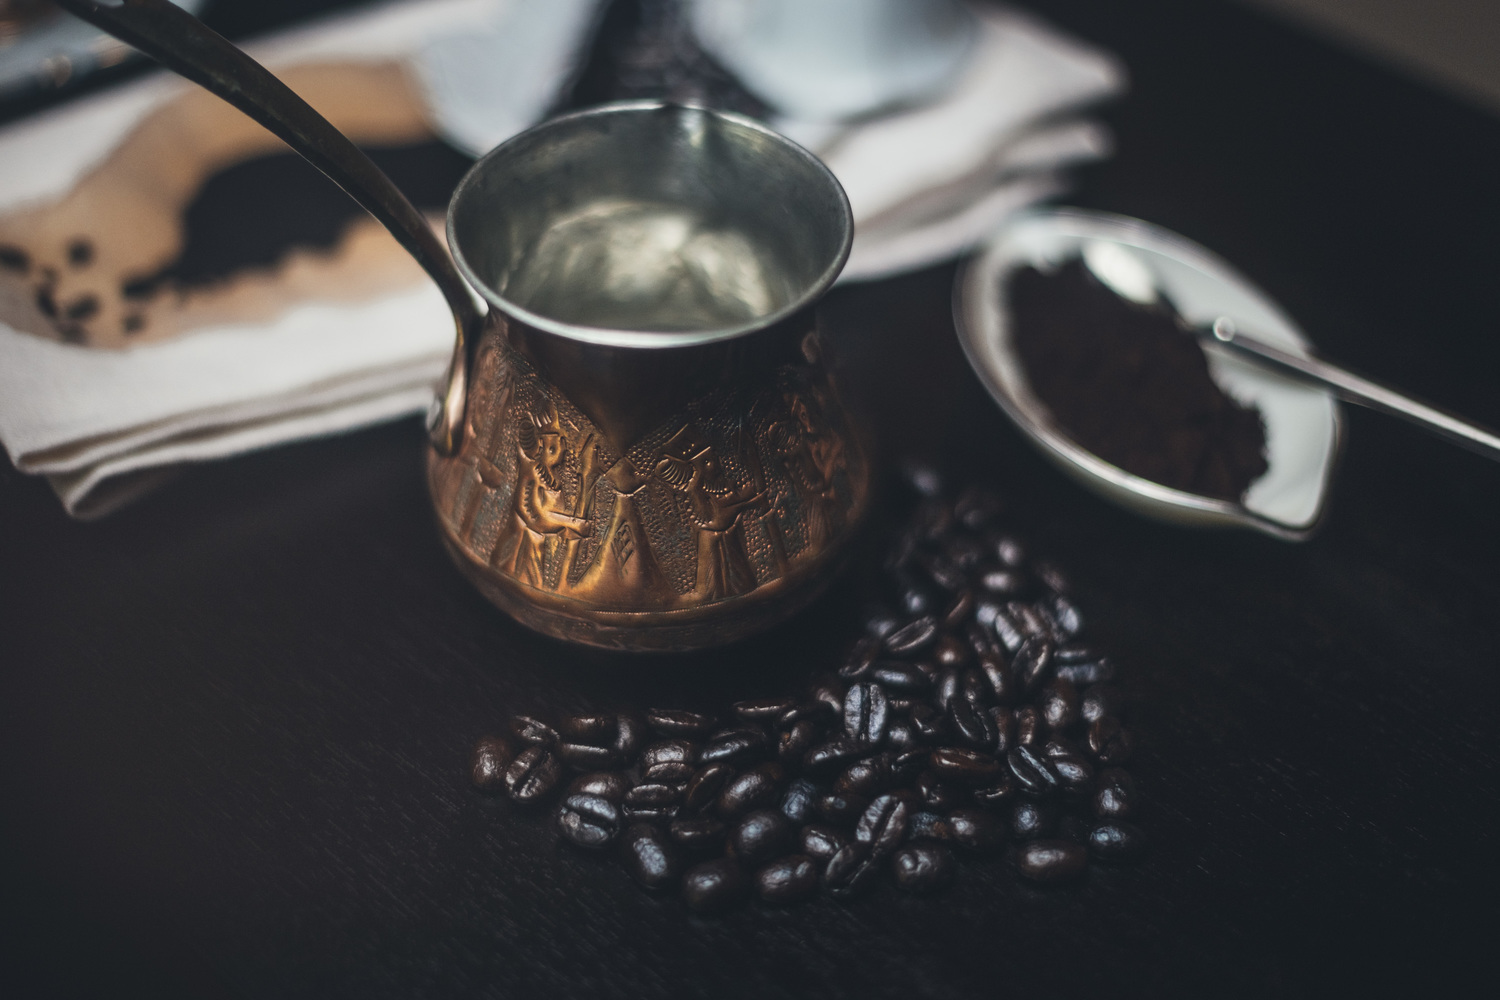 Beyond the cup psychic turkish coffee readings img9664g buycottarizona Image collections